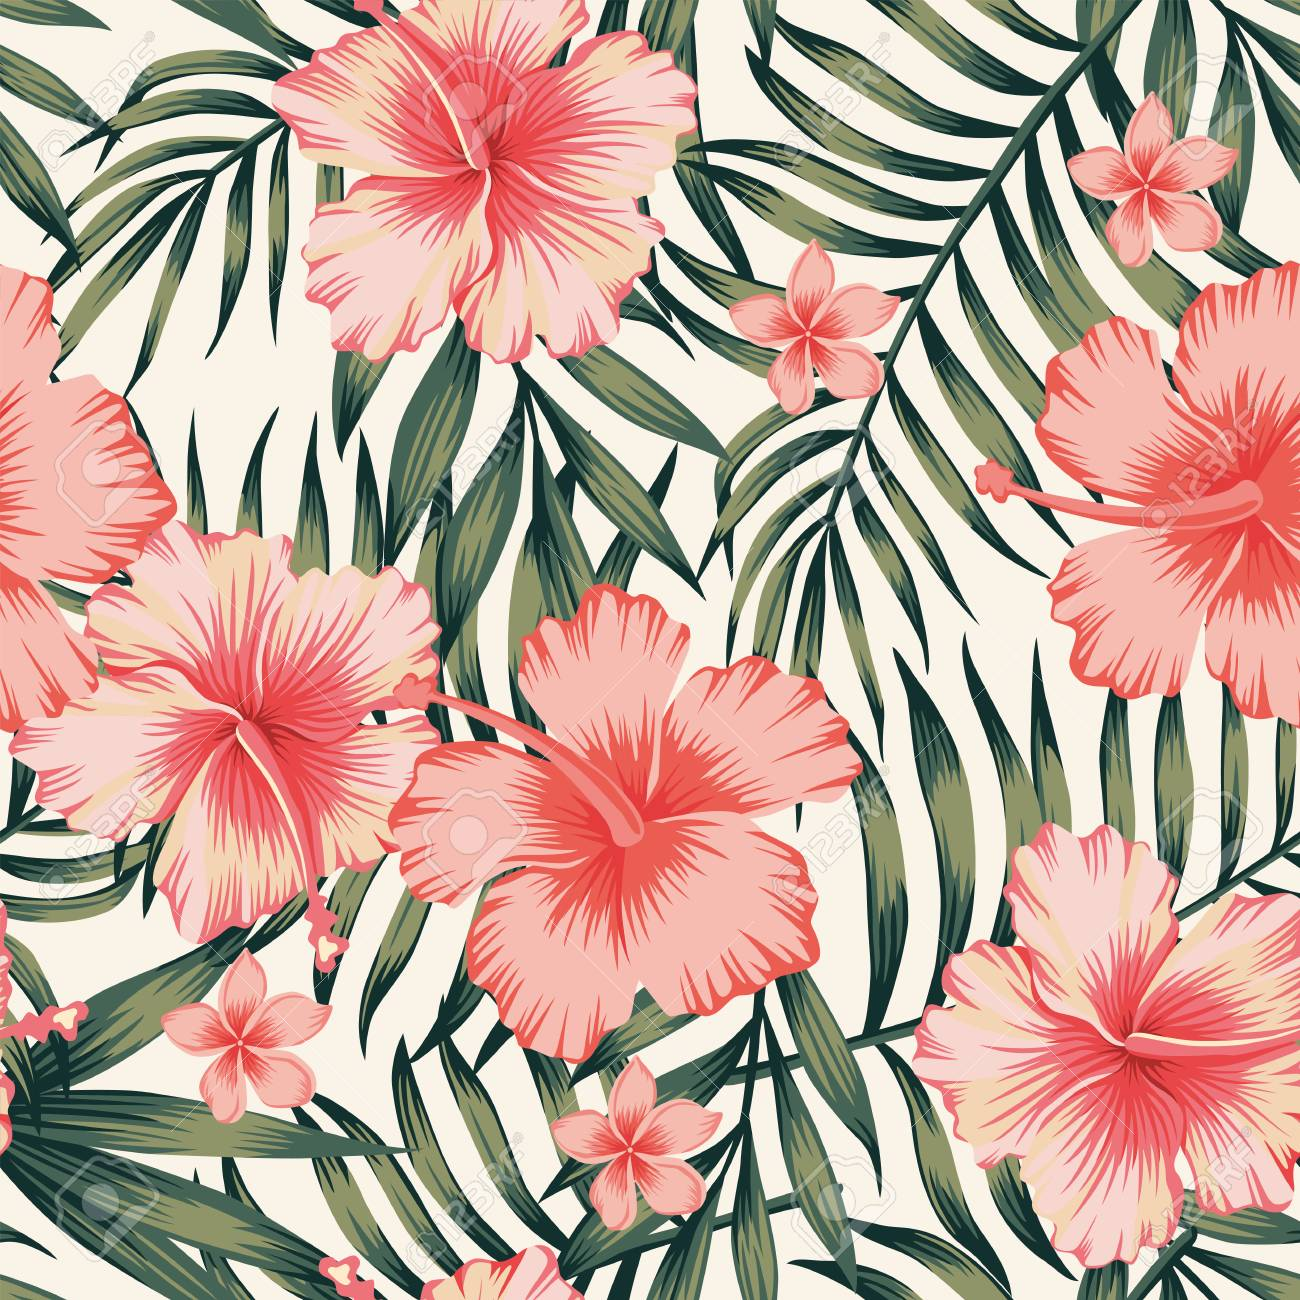 Tropical flower with palm leaves seamless pattern - 91346039